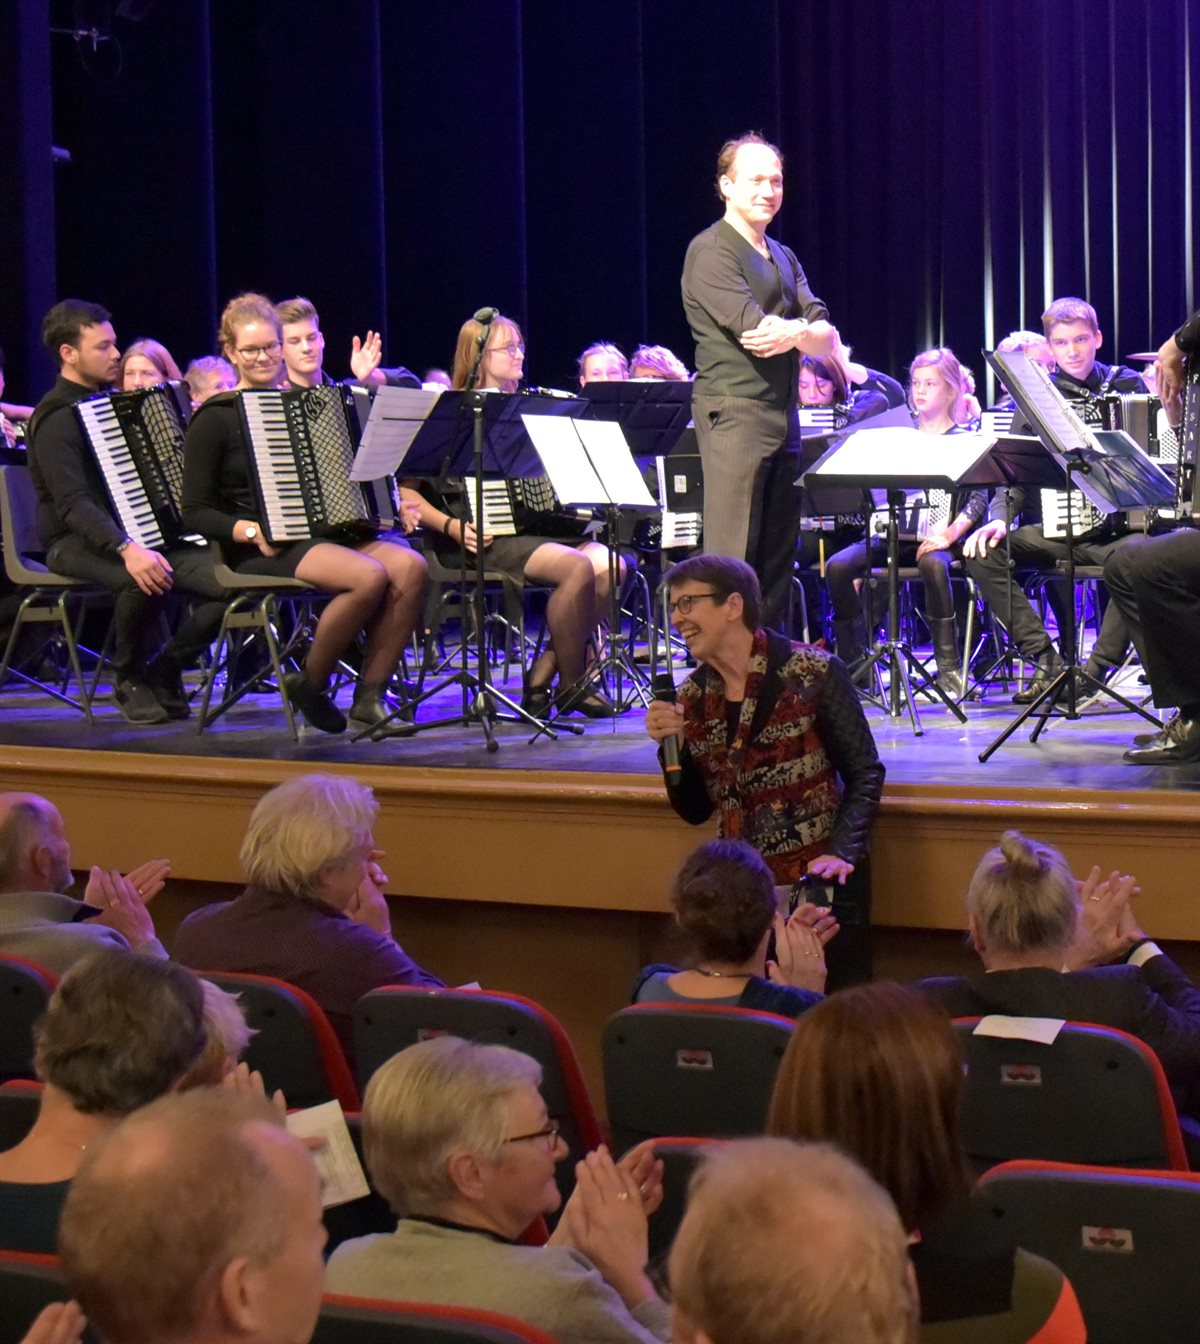 Concert van accordeonvereniging Musetta, orkest Alegro en Nederlands Jeugd accordeon orkest in Meppel